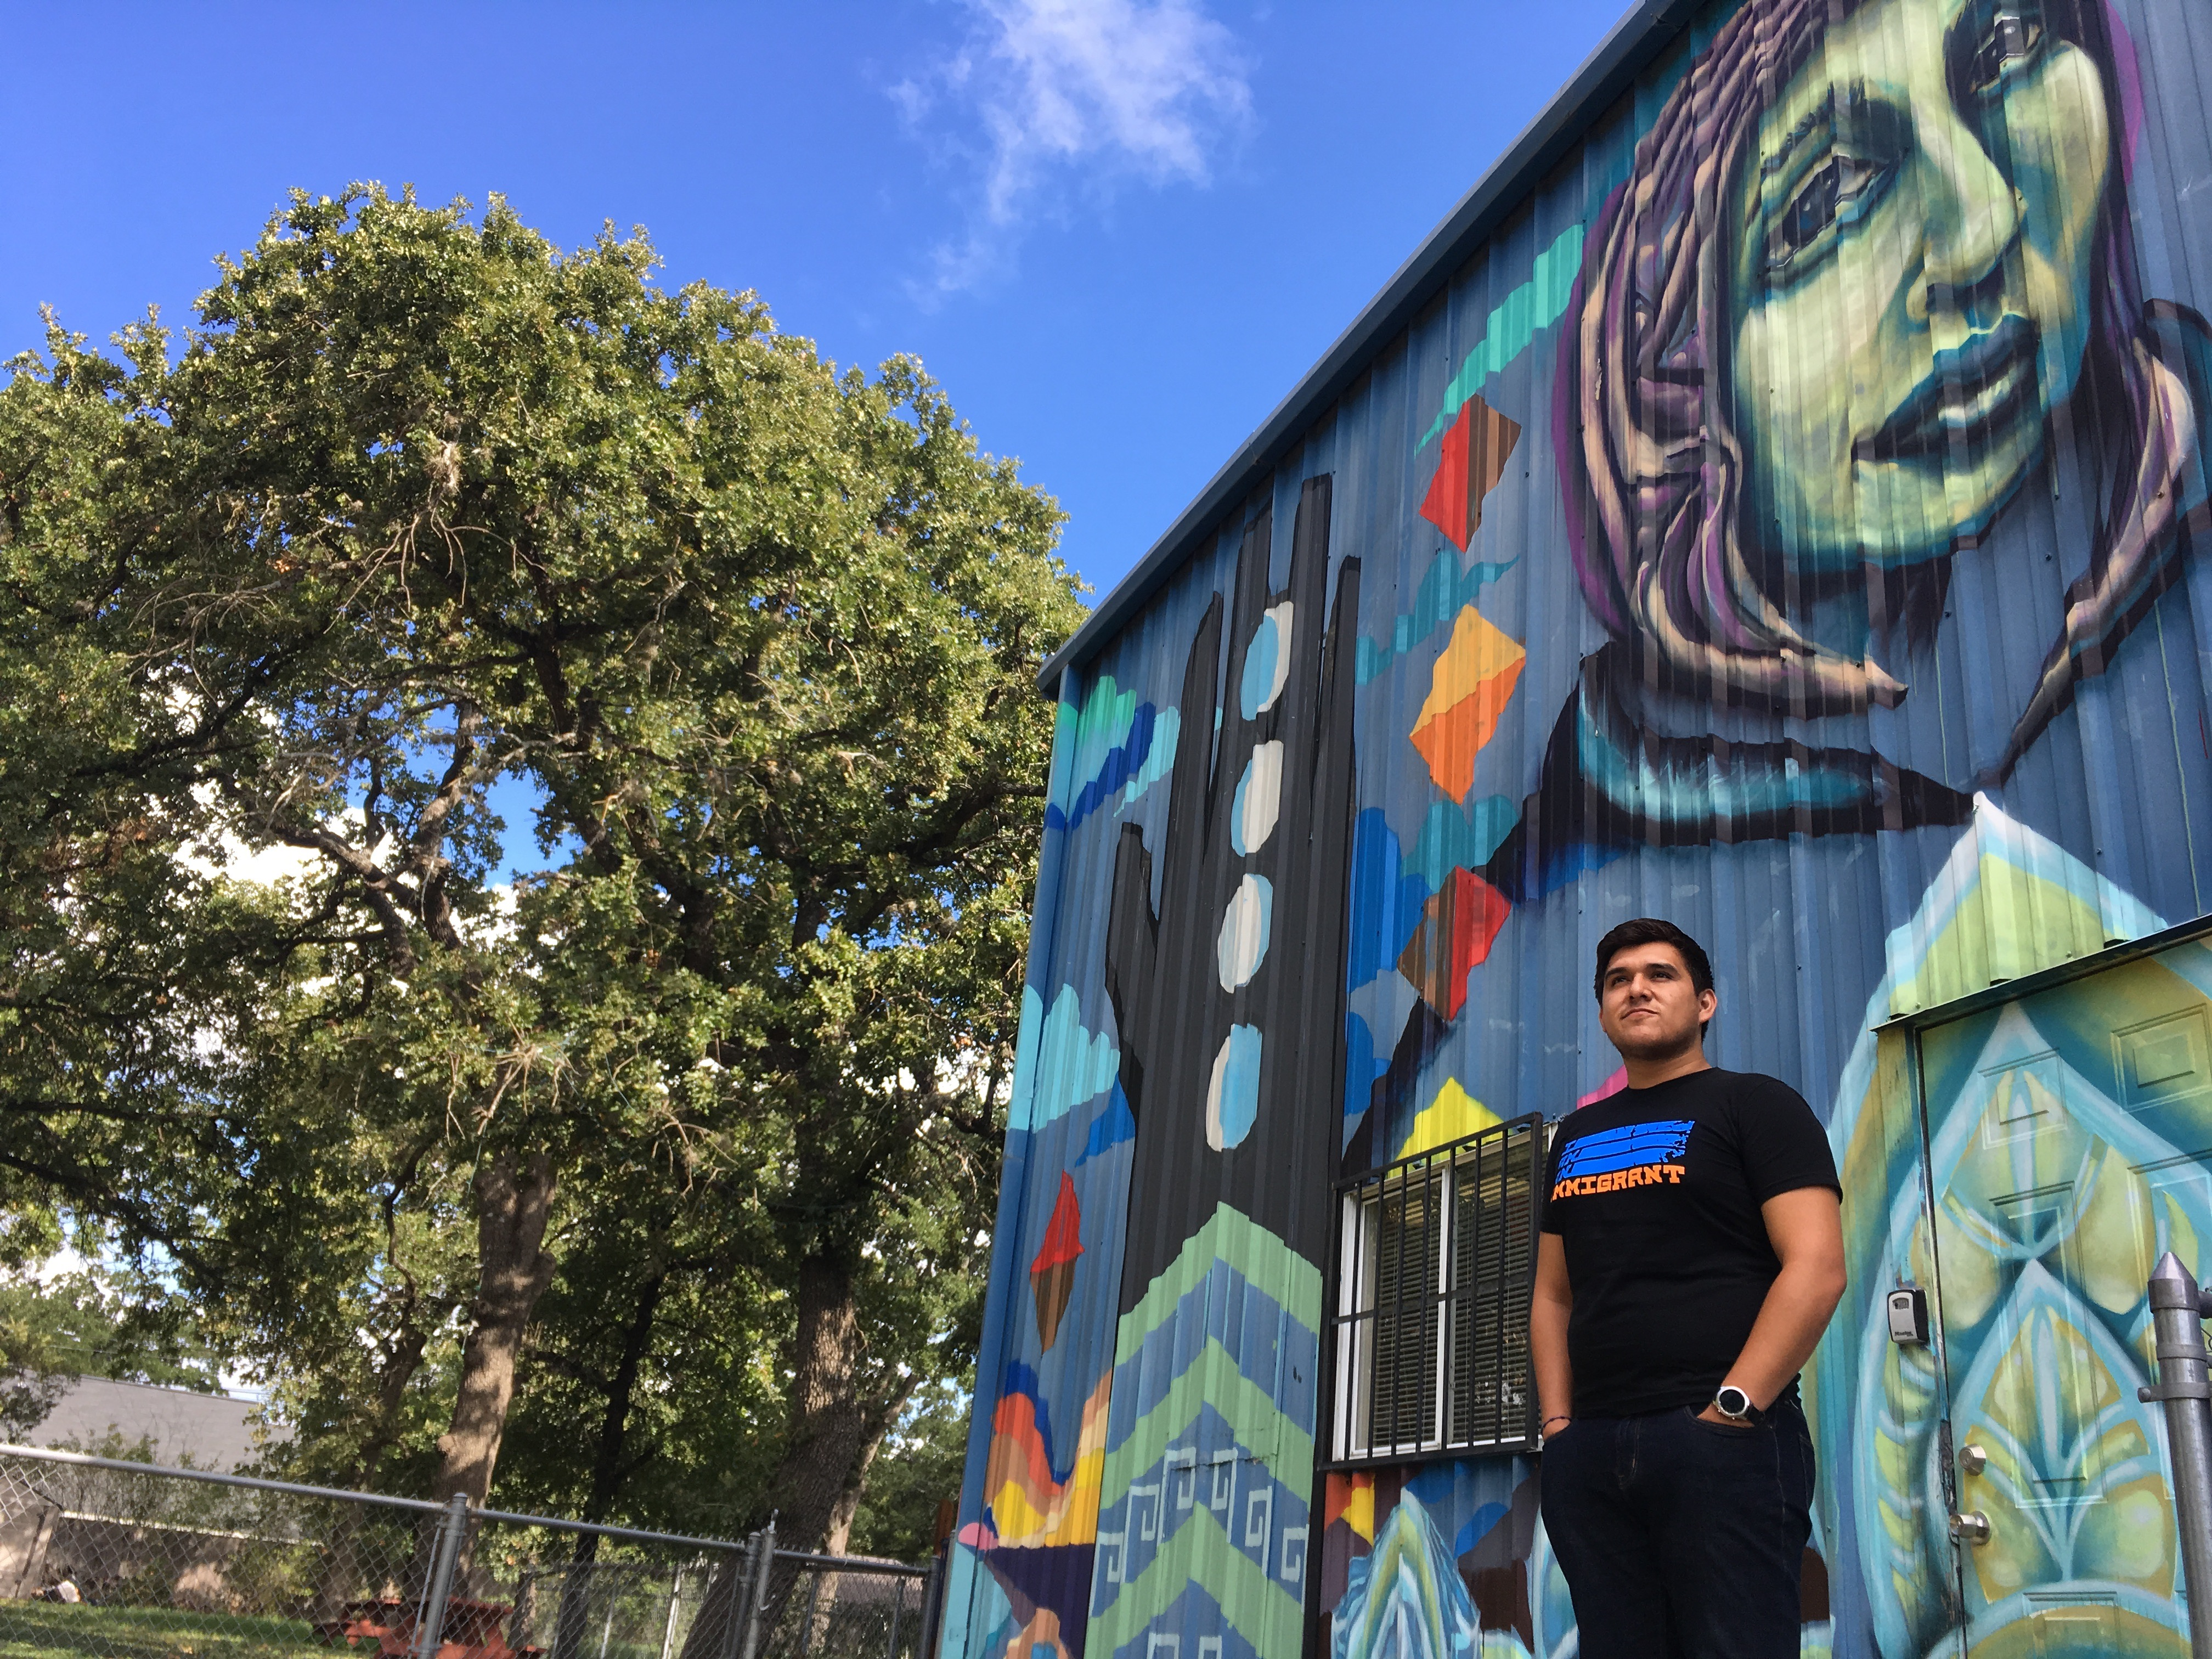 STUDENT VOICES: DACA students worry about 'really tough times' ahead - The Hechinger Report